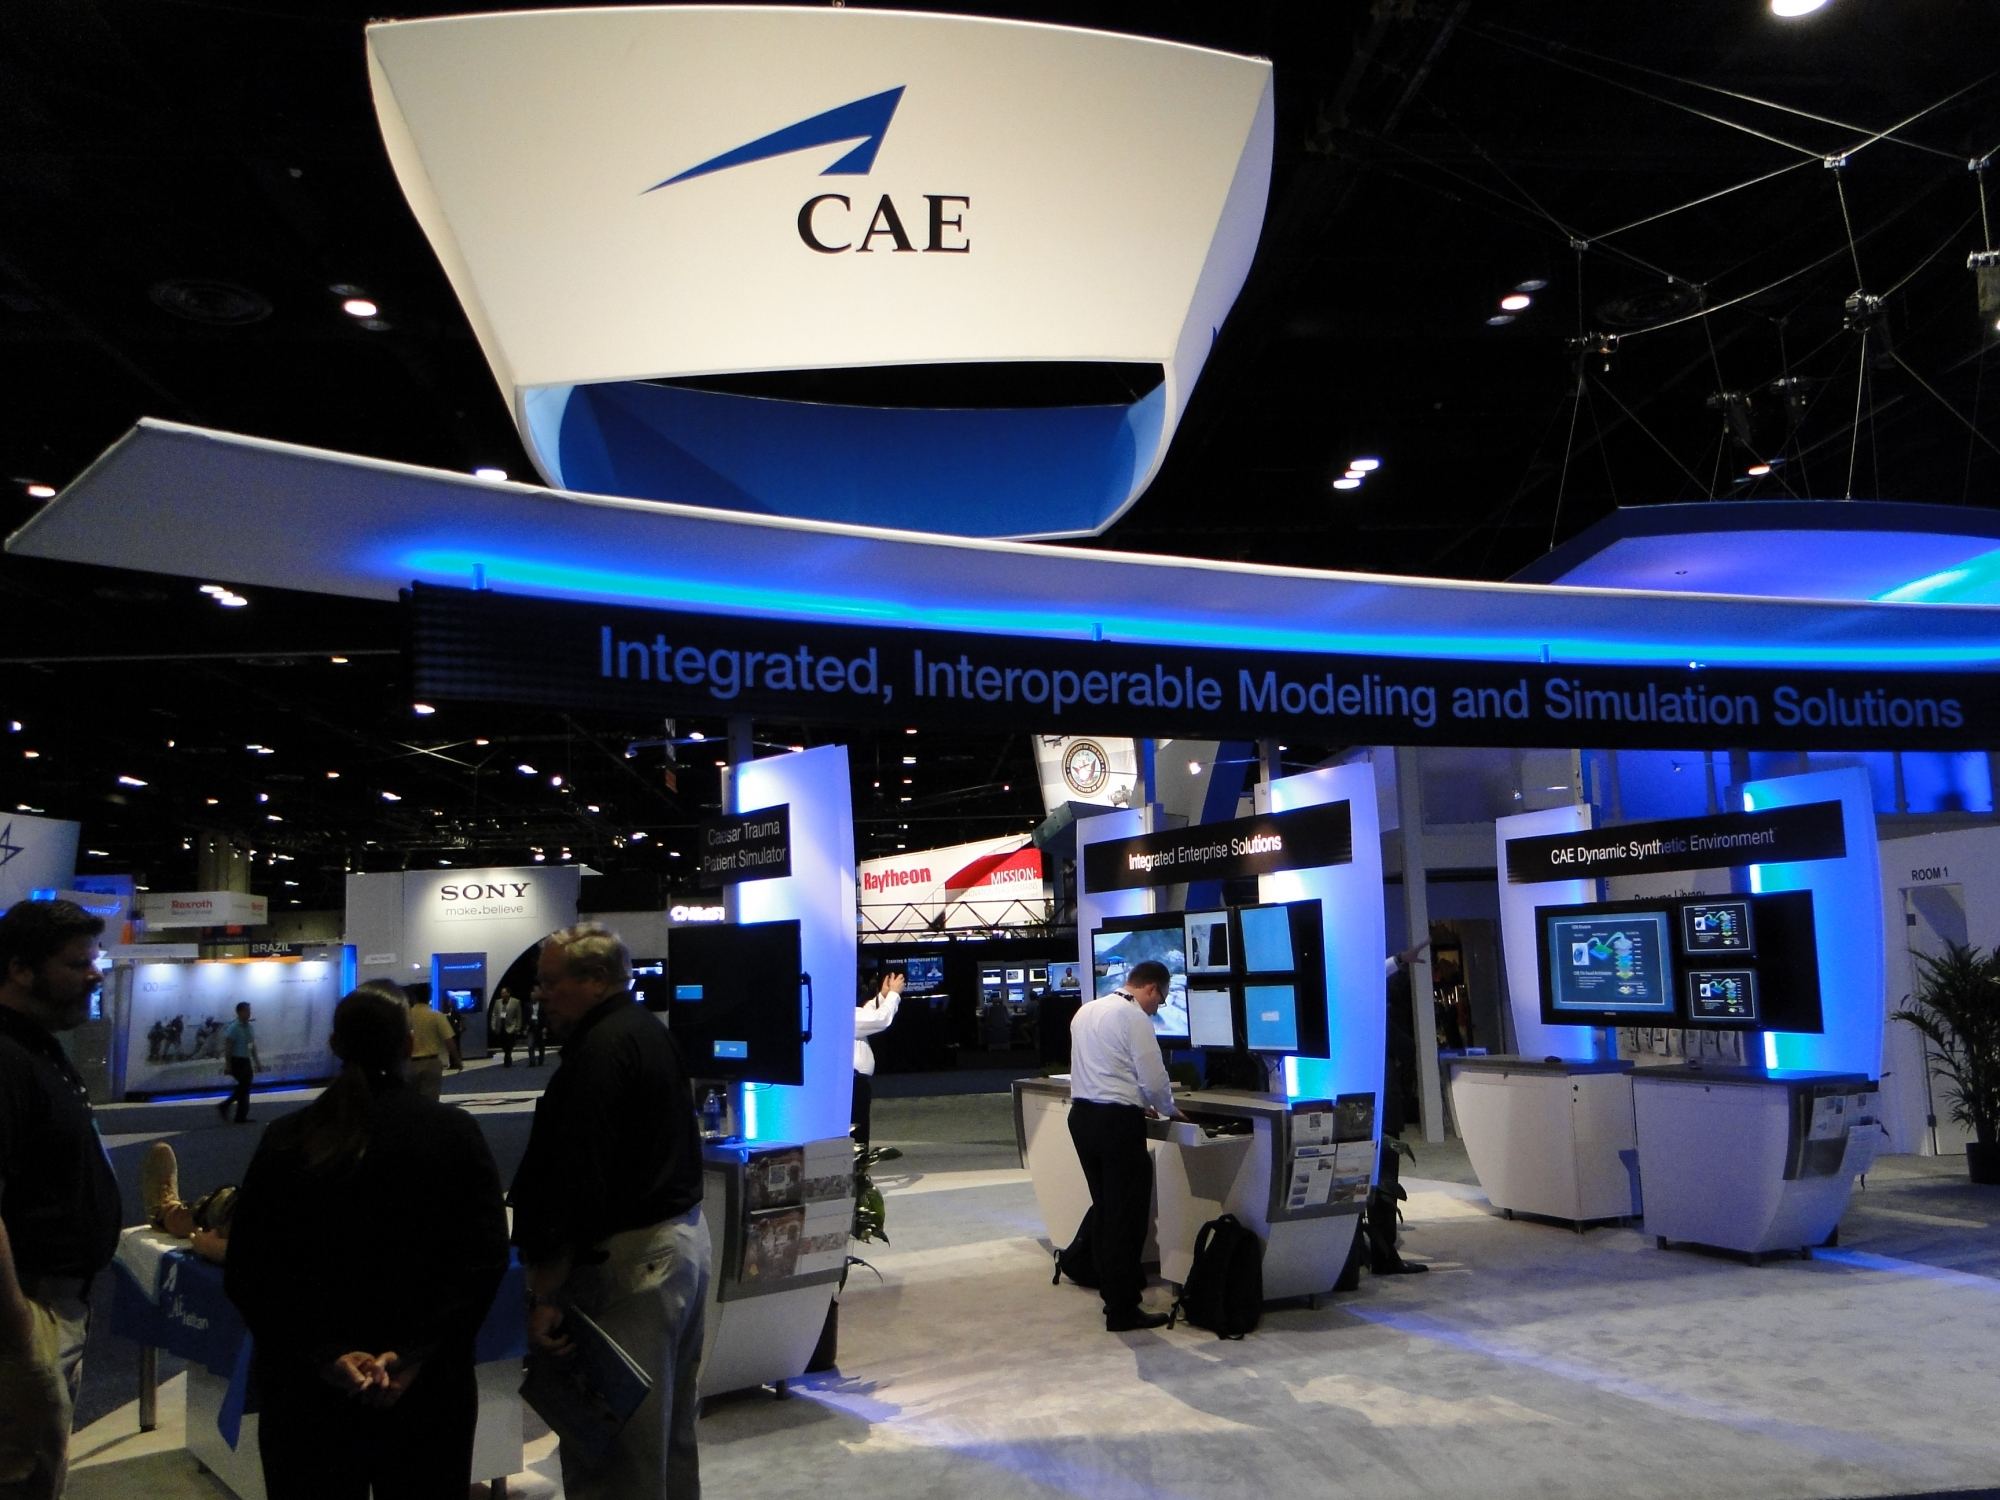 da12571b89a CAE awarded commercial aviation training solution contracts valued at more  than C$100 million